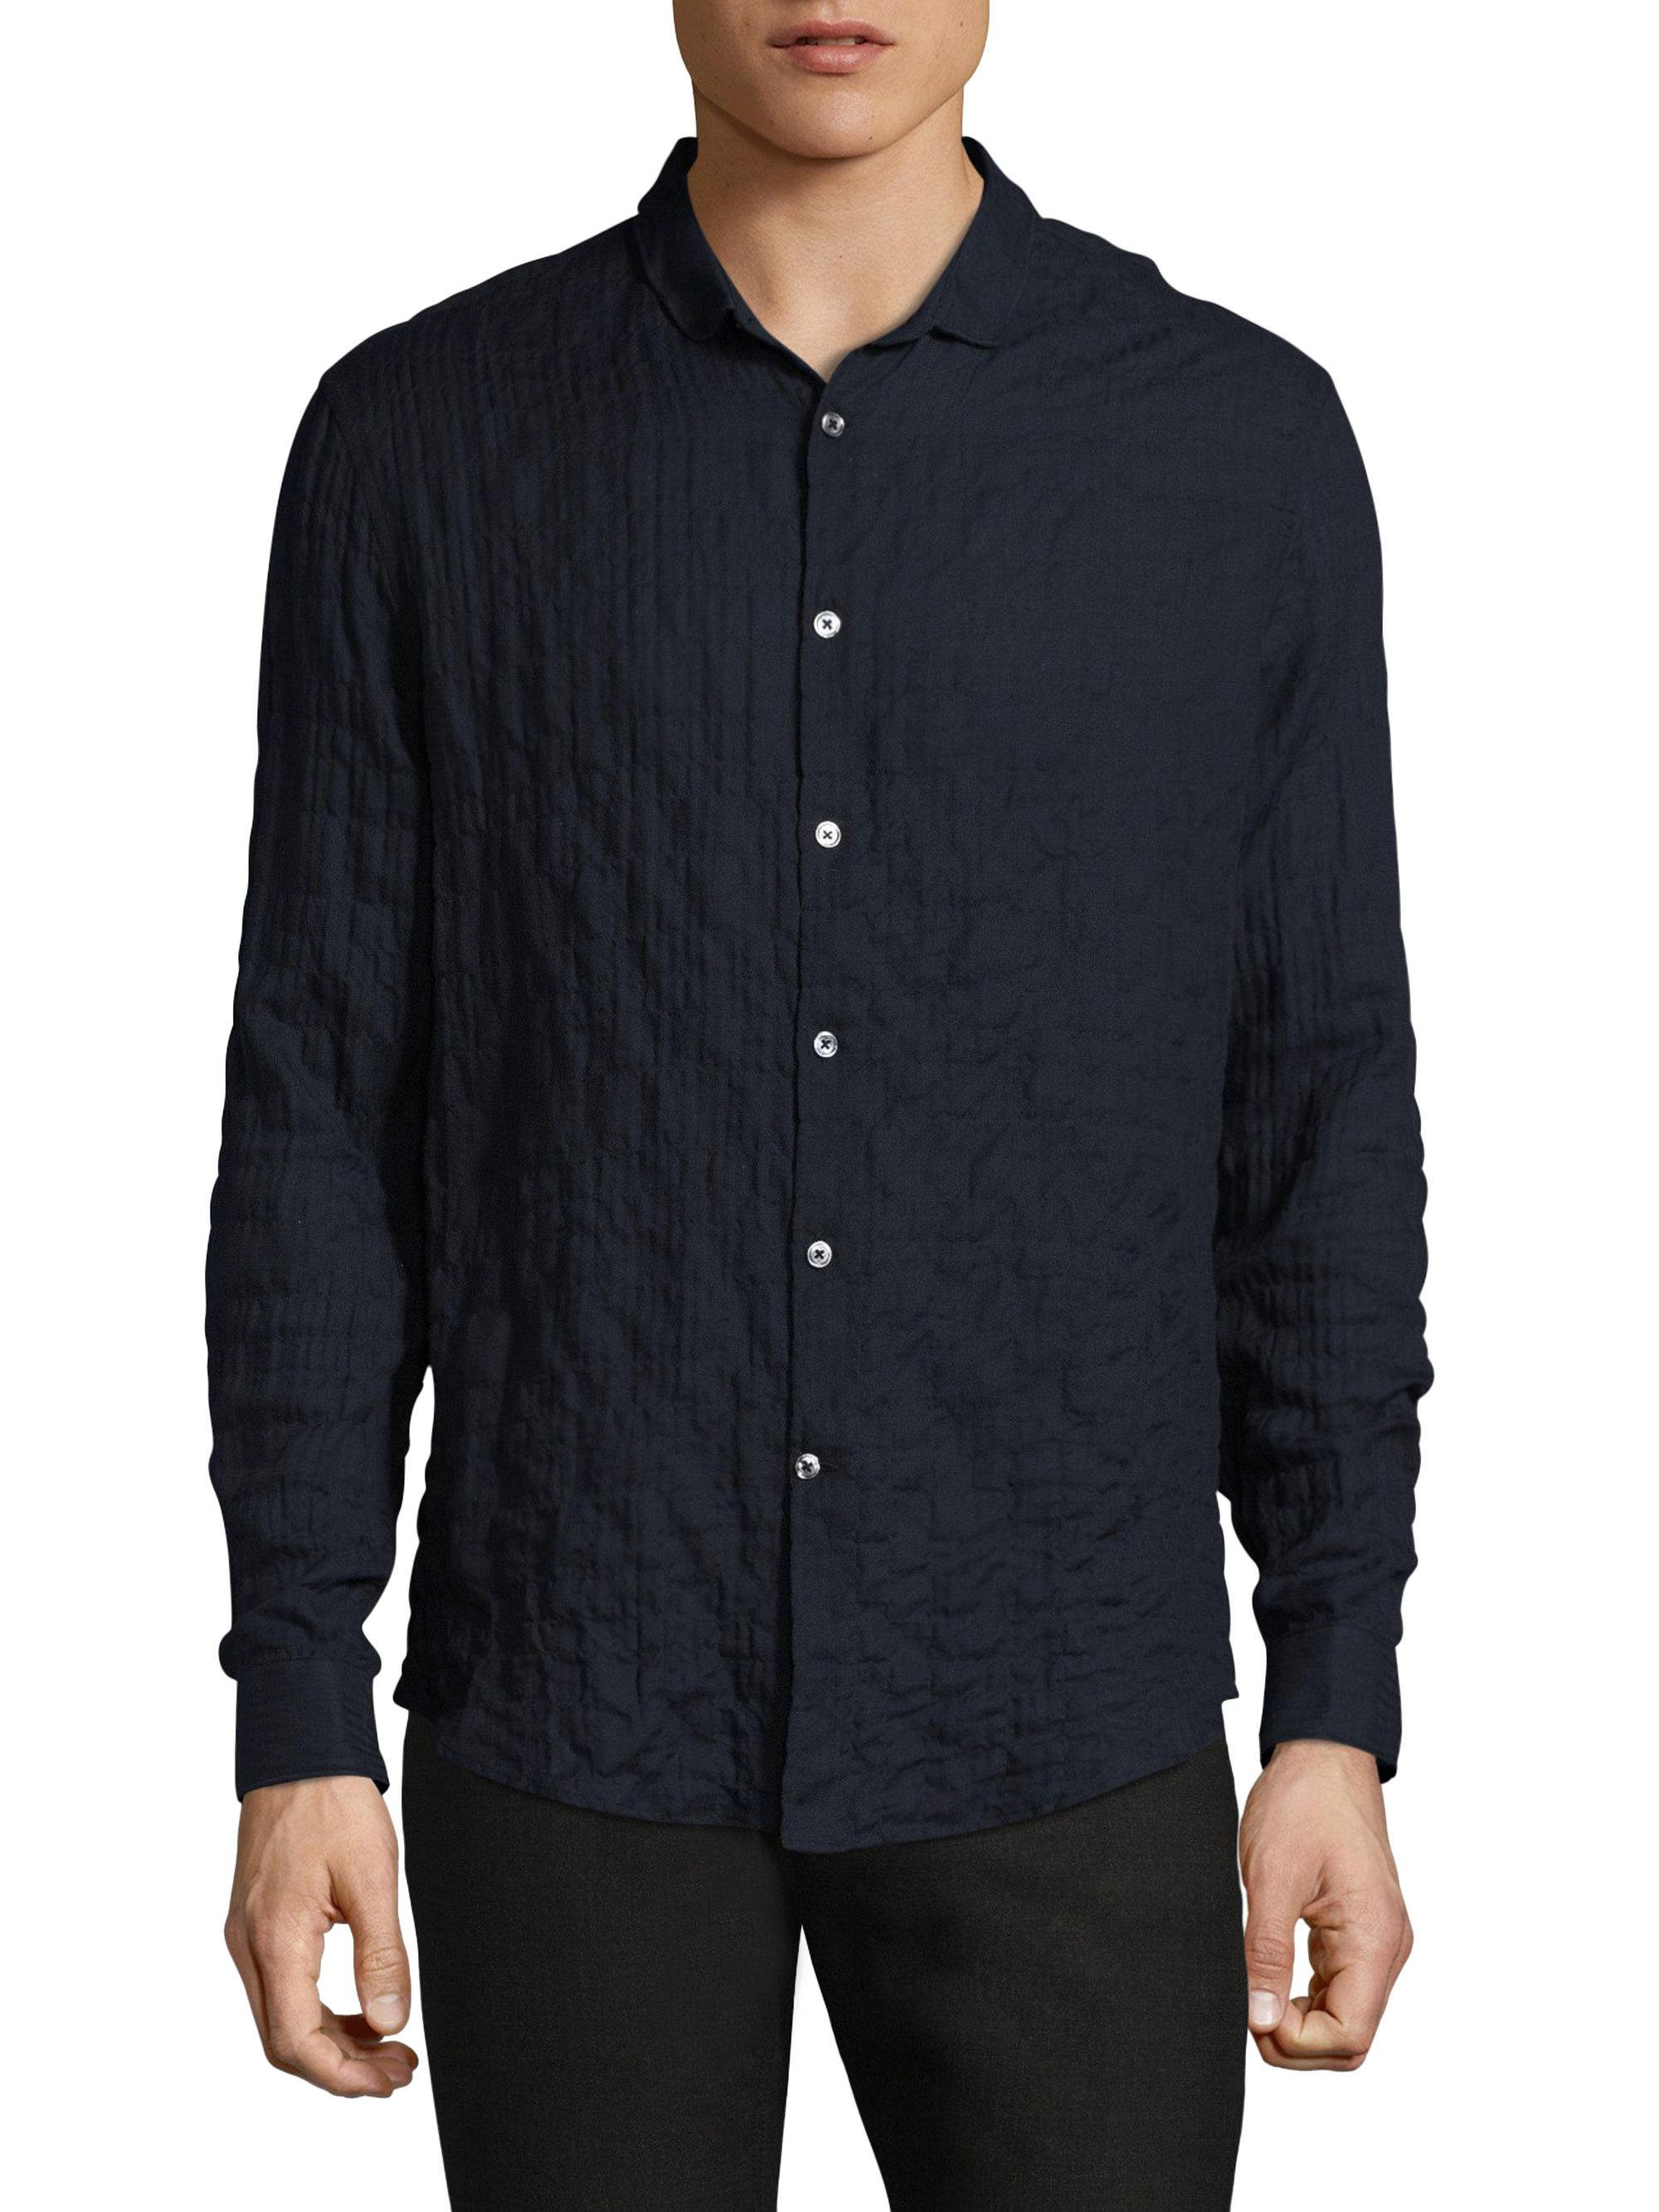 Lyst - John varvatos Slim-fit Wrinkled Casual Button-down Shirt in ...